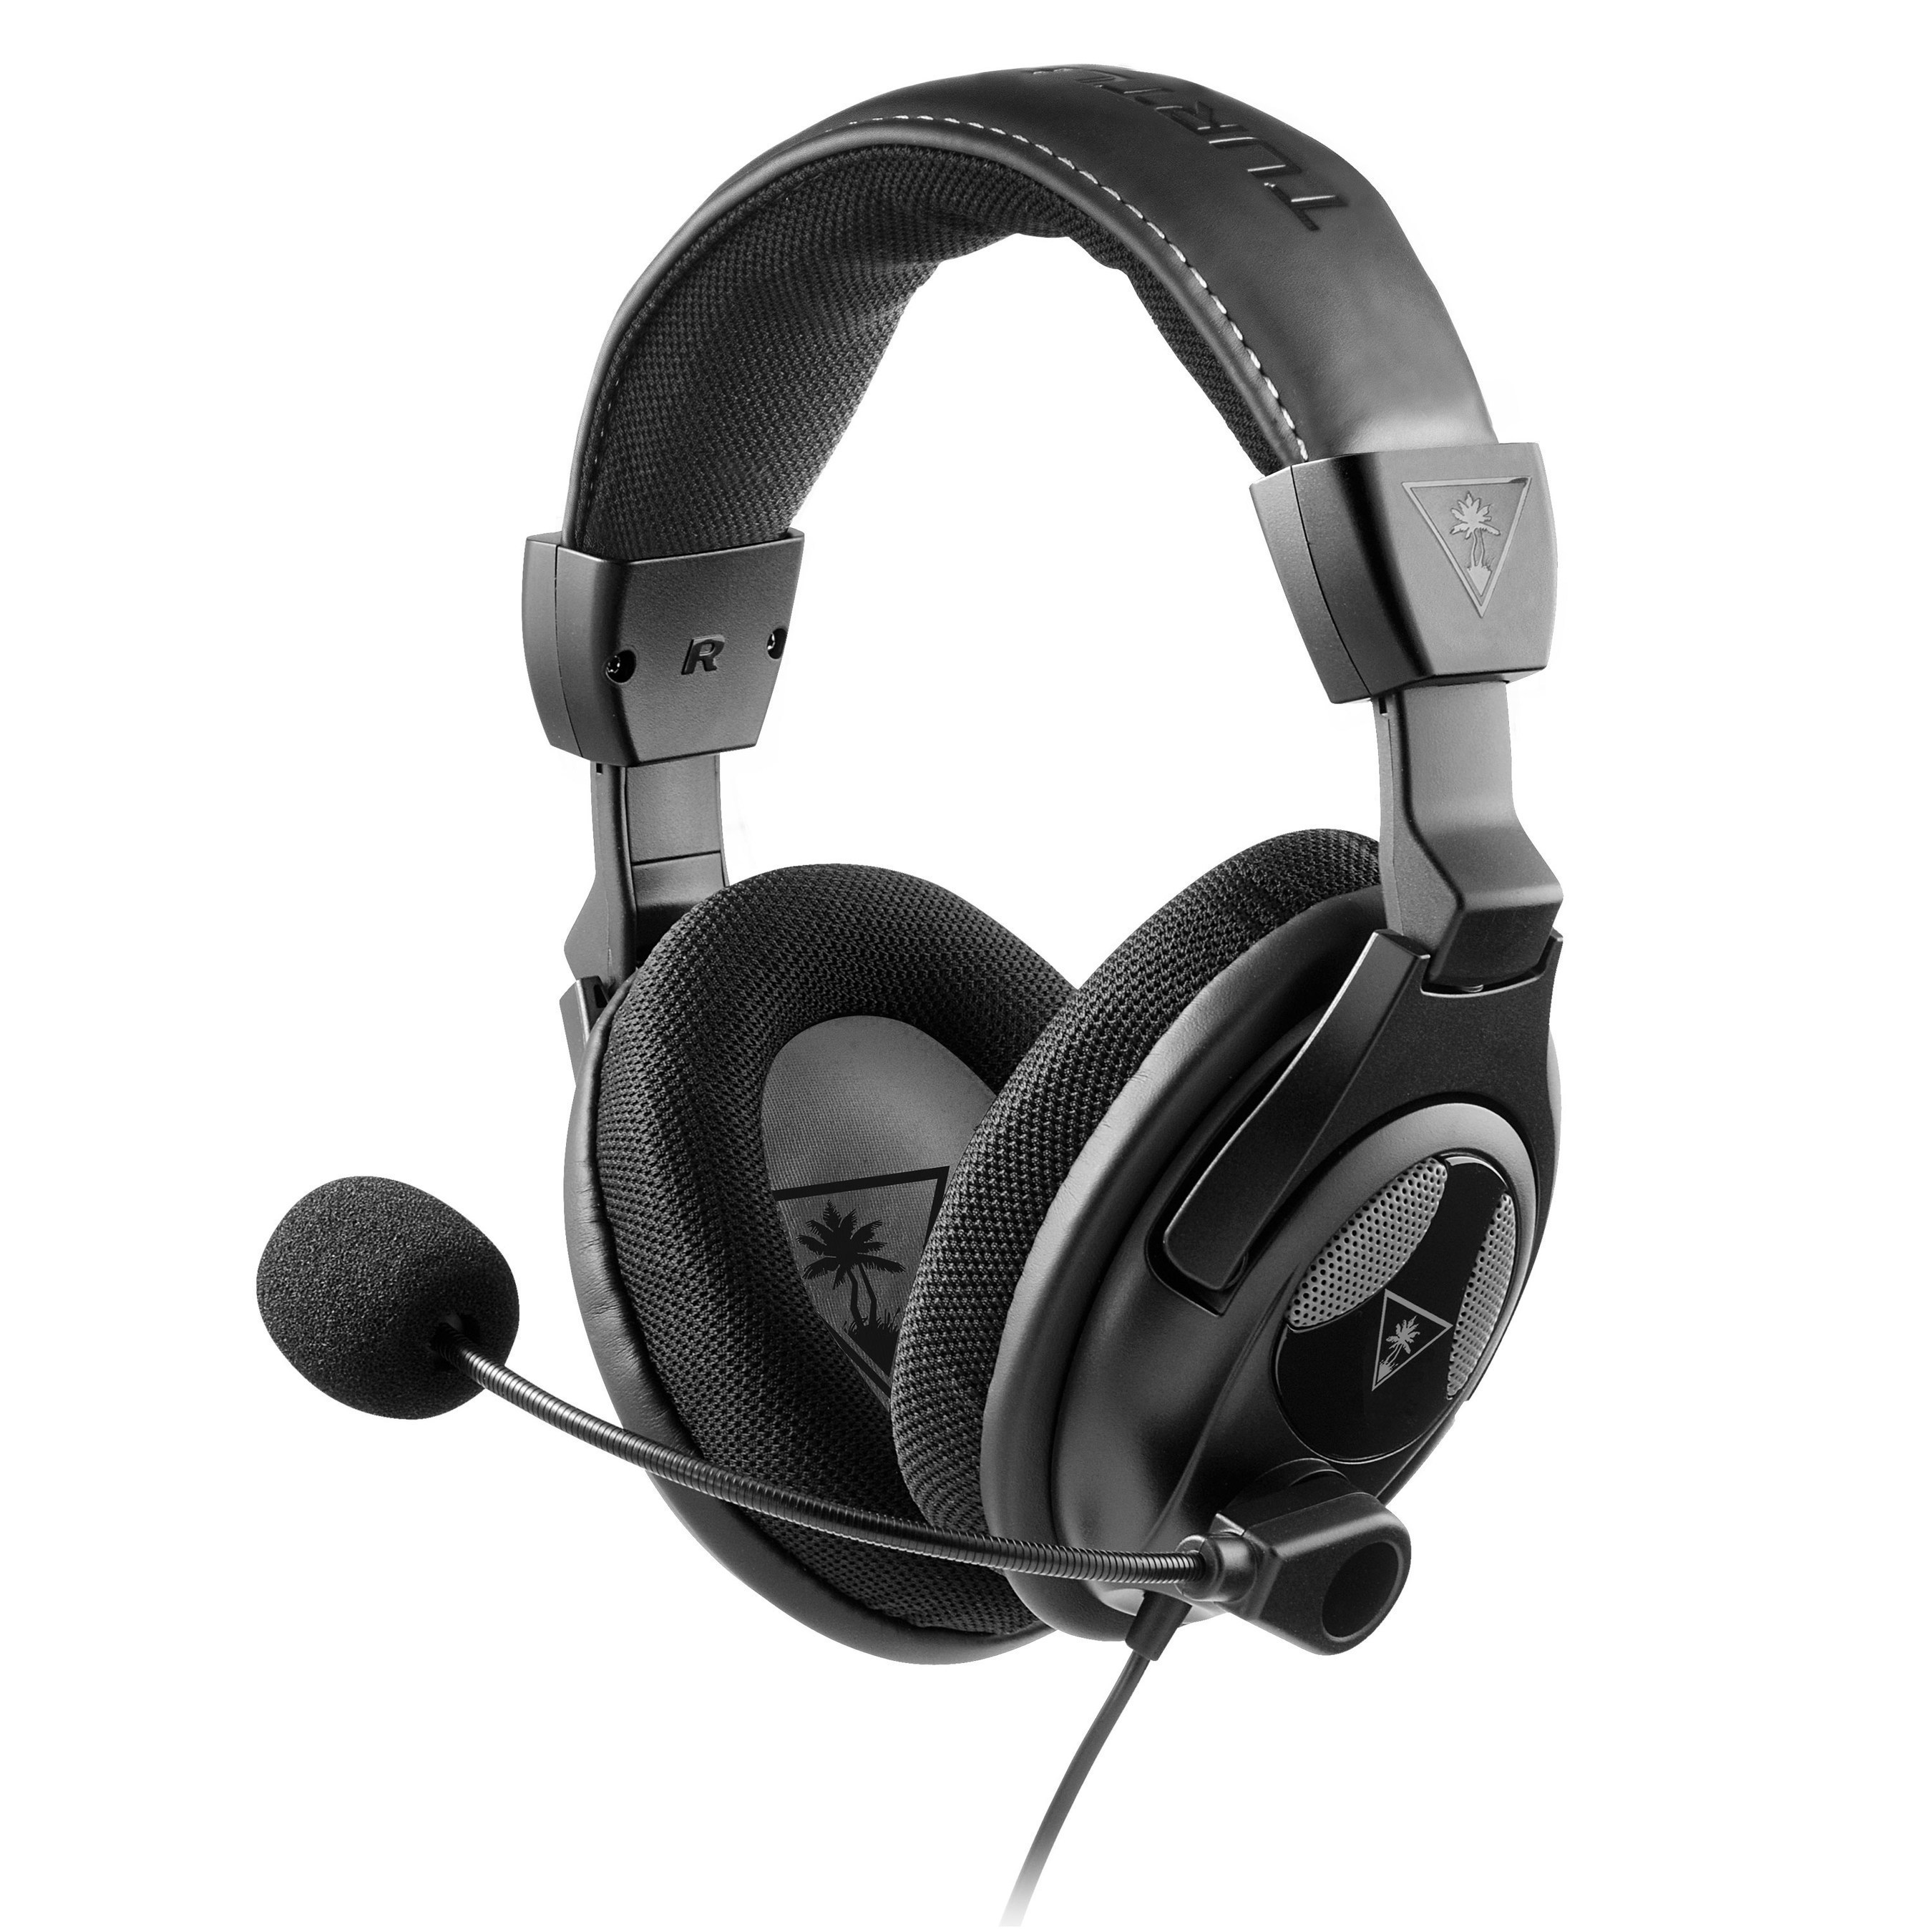 e27eabc9cd8 Turtle Beach's Ear Force PX24 is a multiplatform gaming headset for  PlayStation(R)4 ...